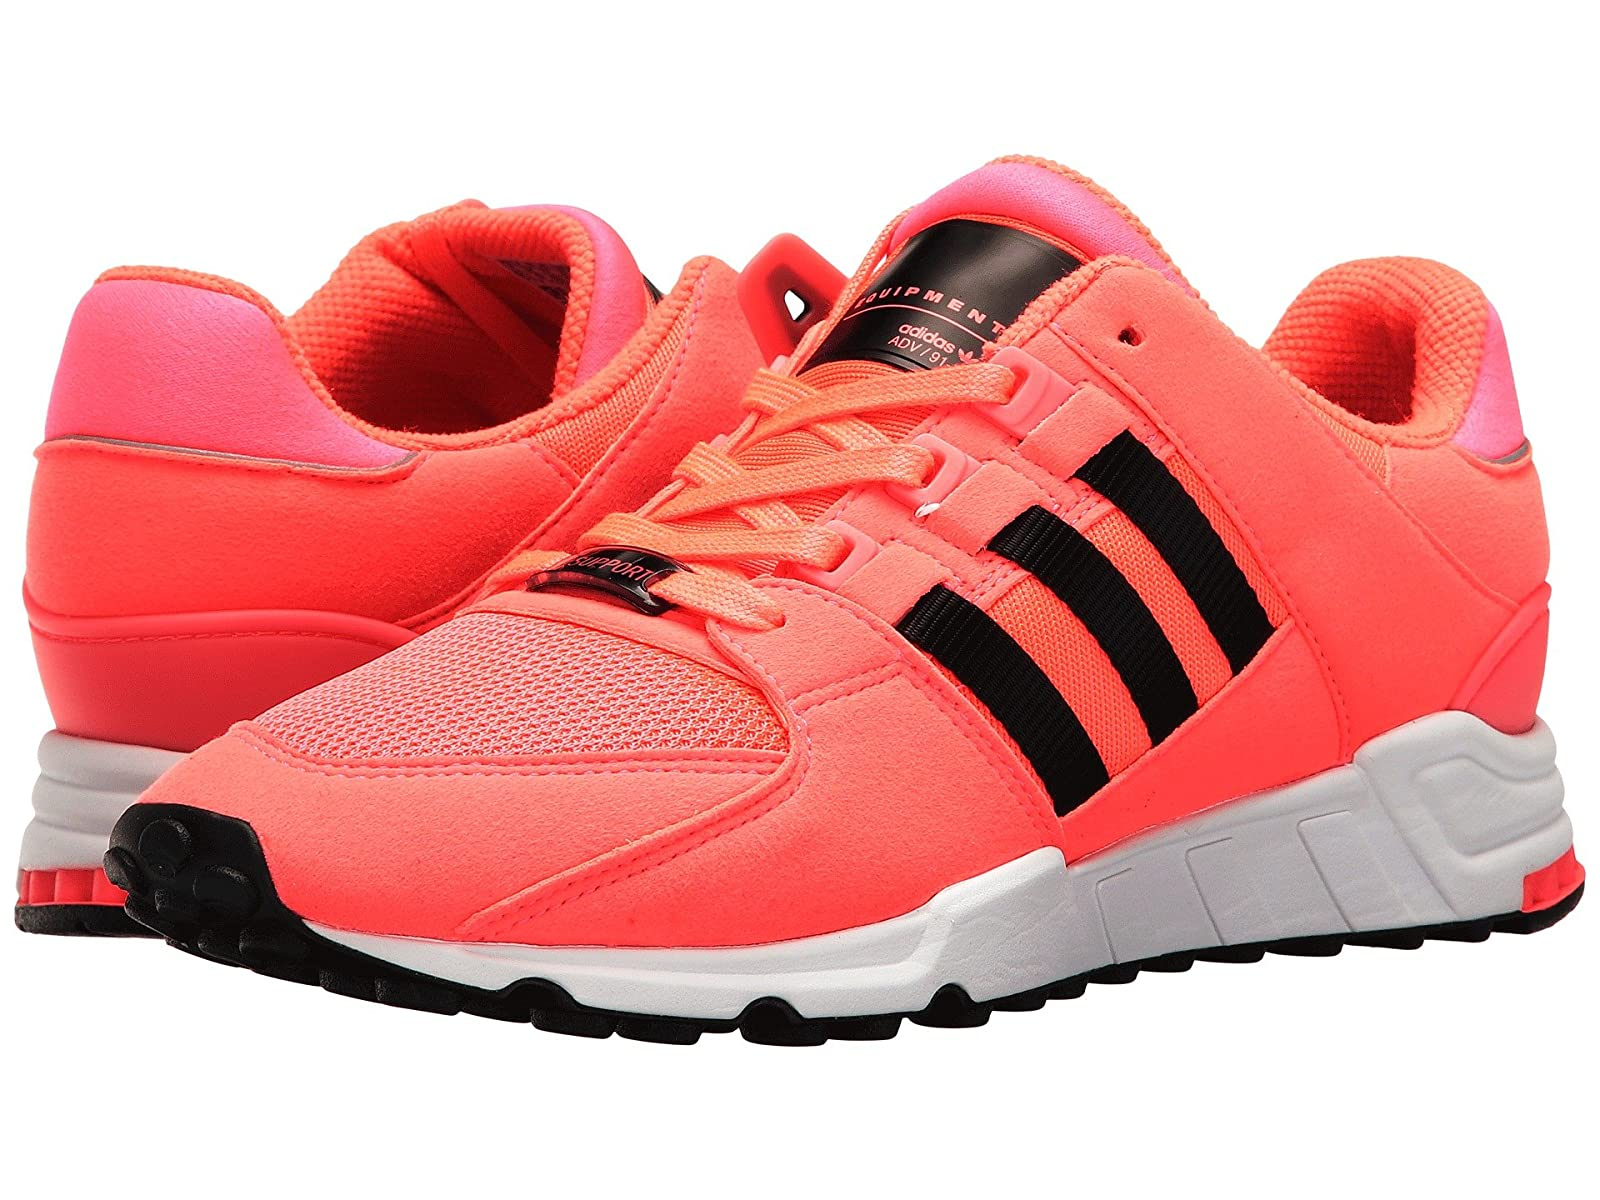 adidas Originals EQT Support RFStylish and characteristic shoes